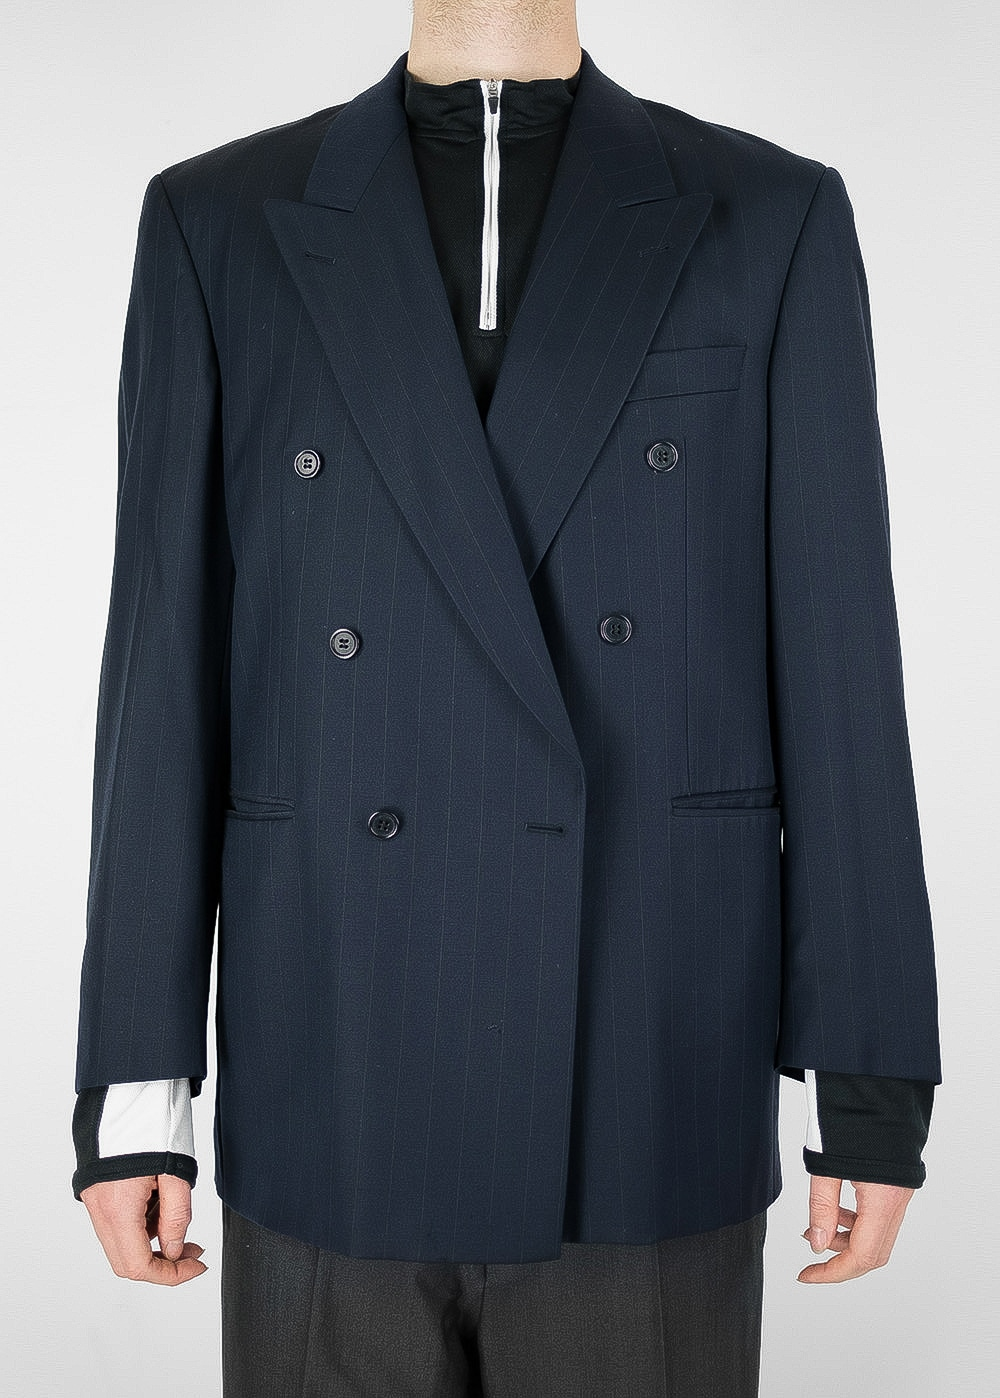 Captain Navy Jacket 30